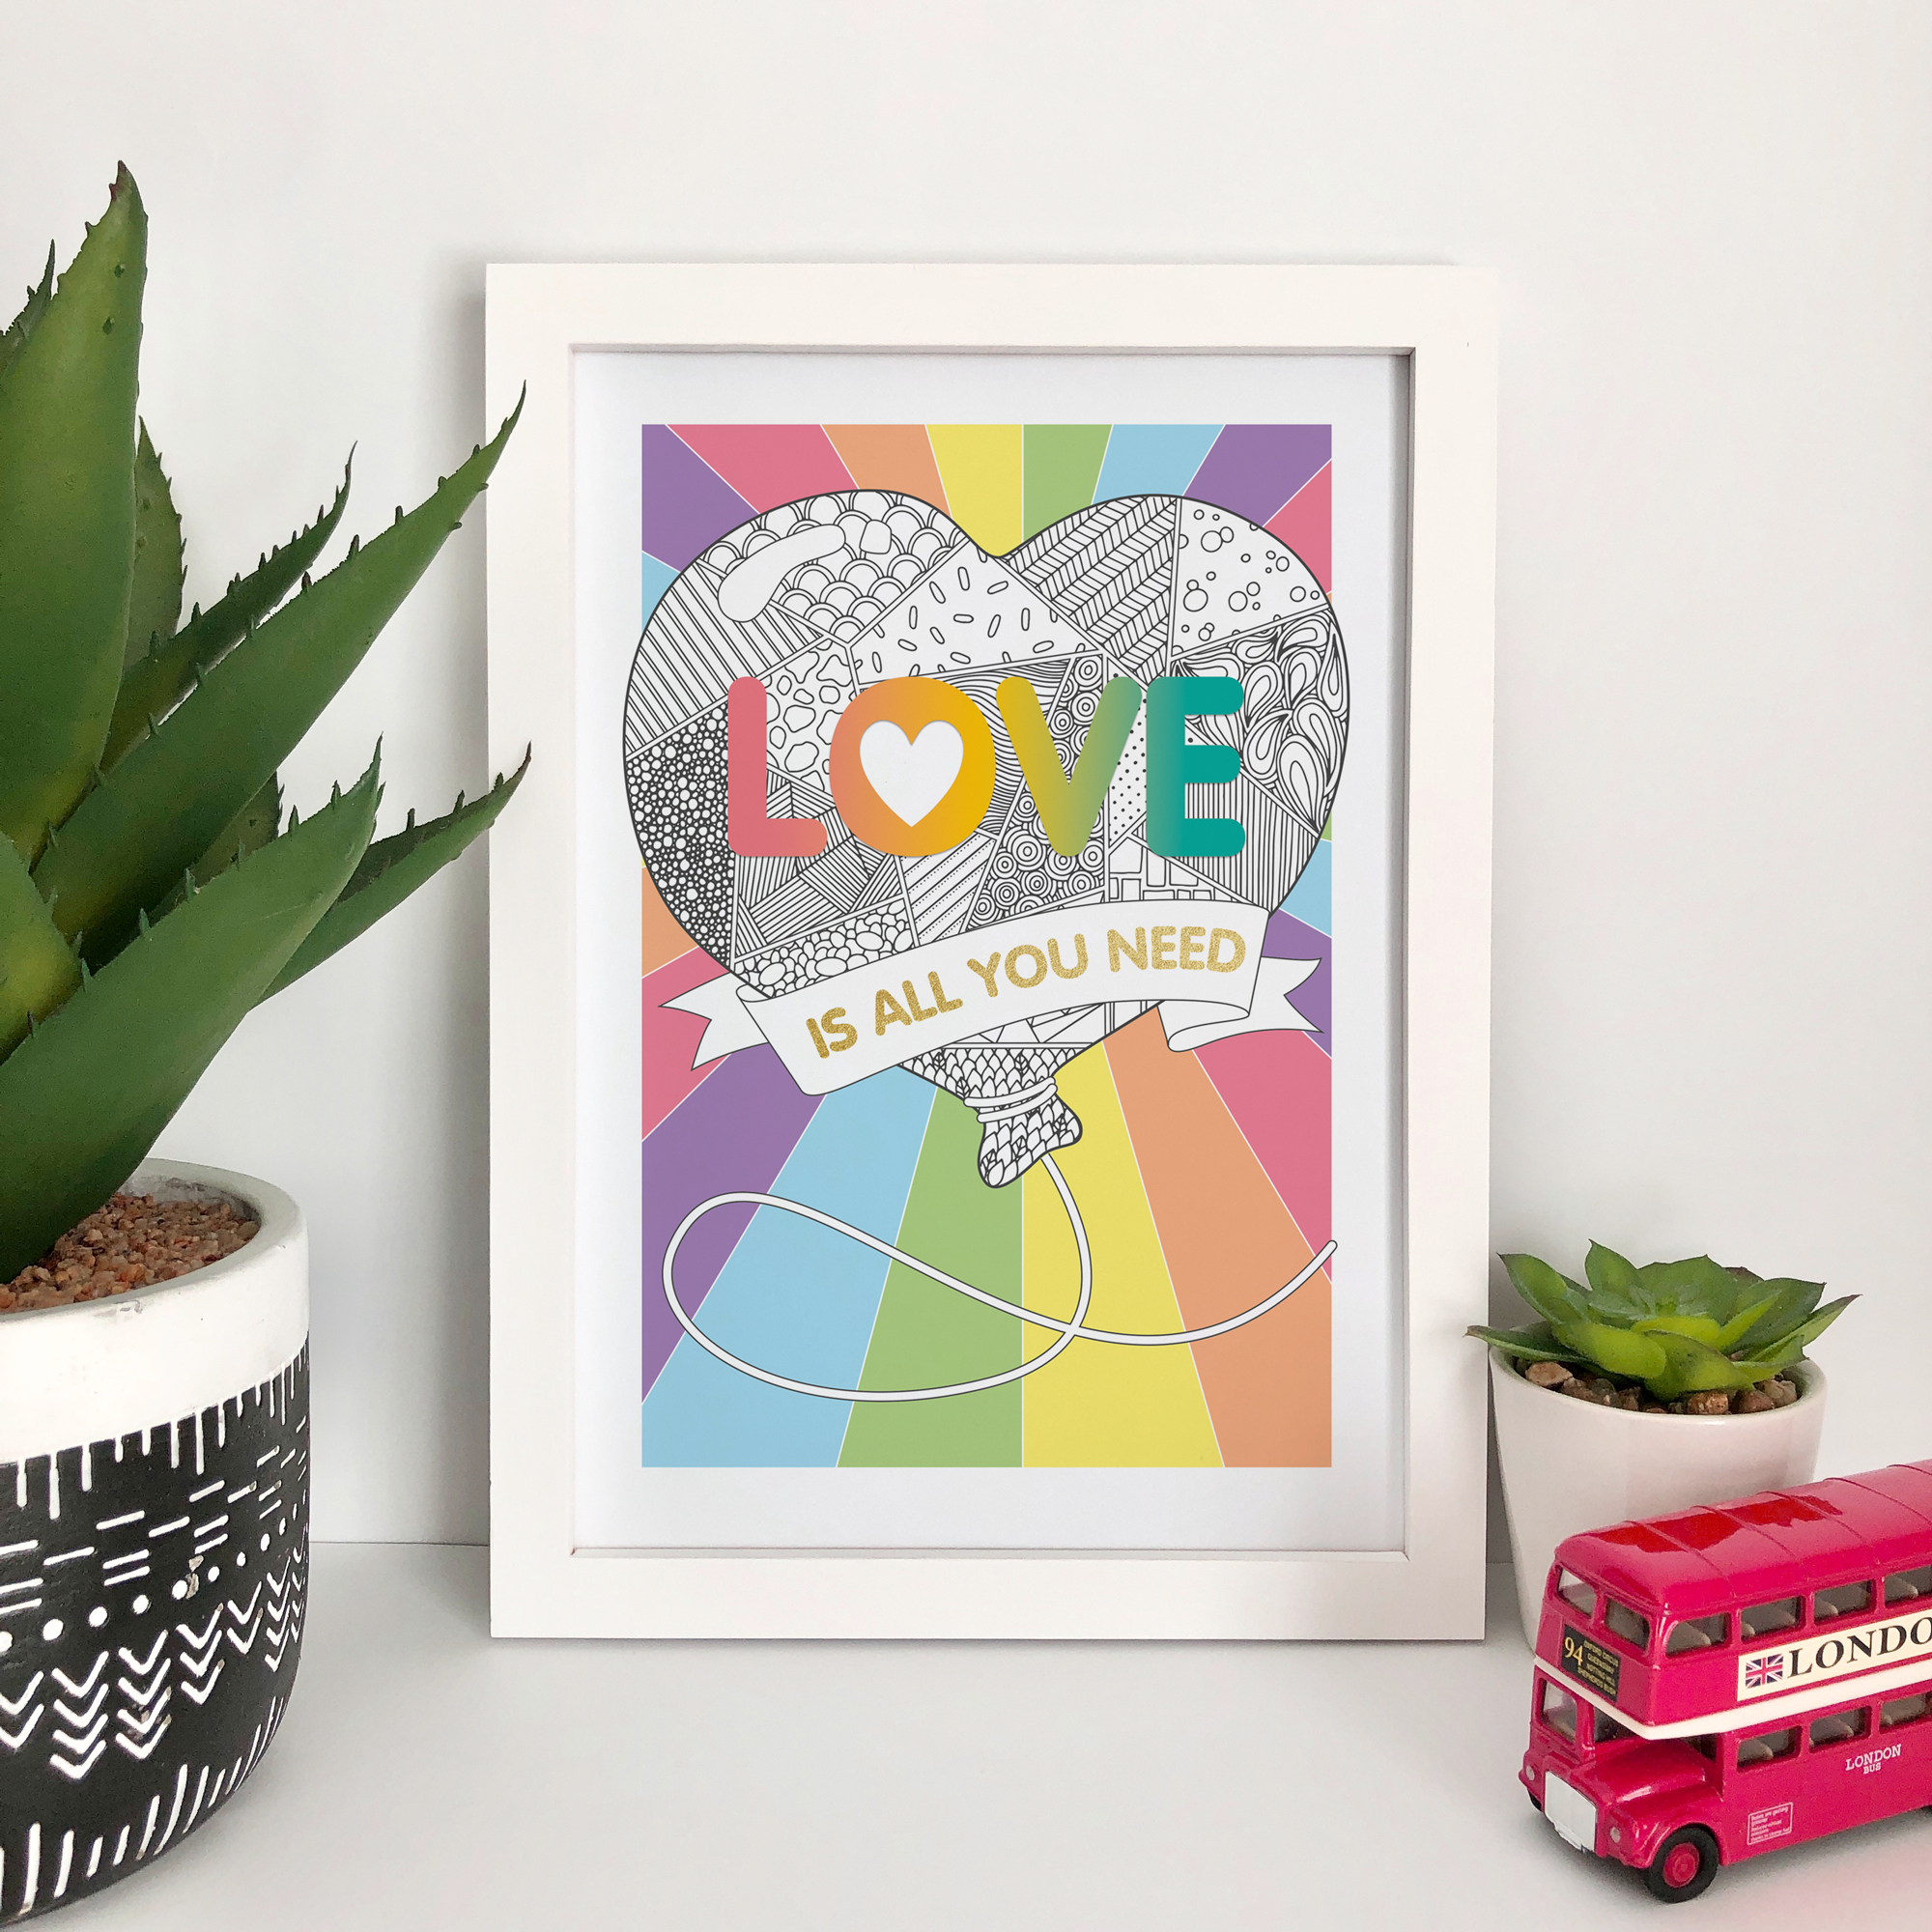 This gorgeous design features the Beatles lyric 'Love is all you need' with a zentangle patterned heart shaped balloon and a choice of rainbow, pink, grey or blue background.